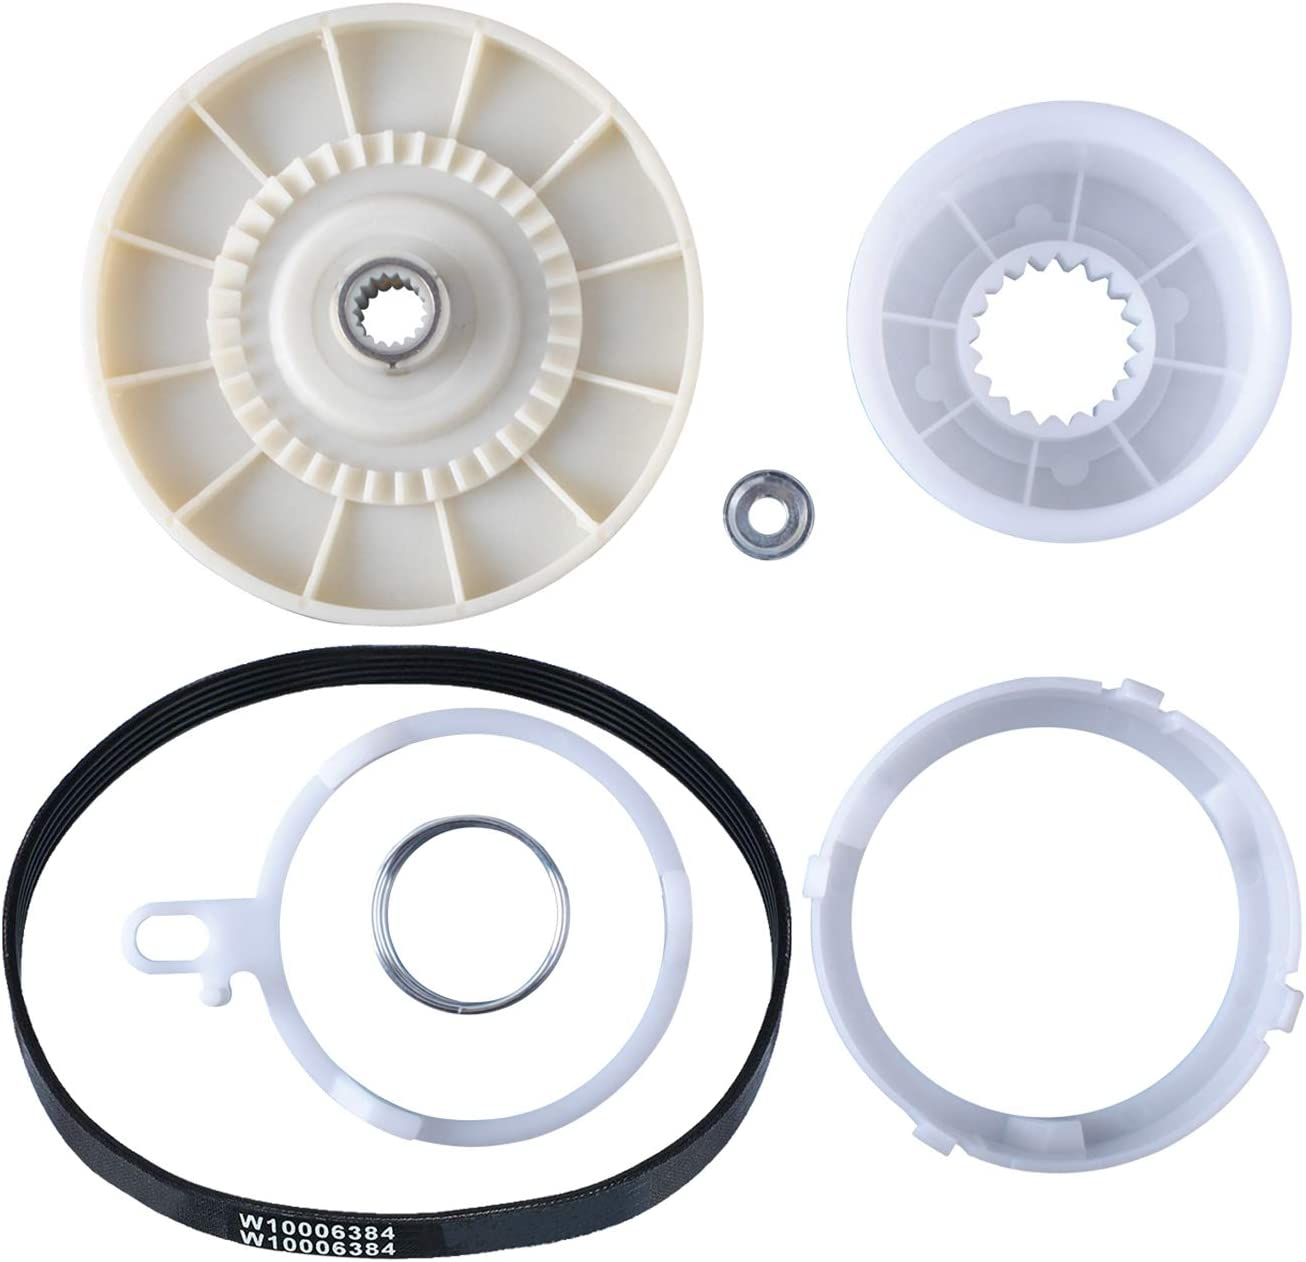 W10721967 Washer Pulley Clutch Kit with W10006384 Washer Drive Belt For Whirlpool, Replace W10006356, W10315818, PS10057144, W10006352, W10006353, W10006354, W10006382, W10326374, W10536113